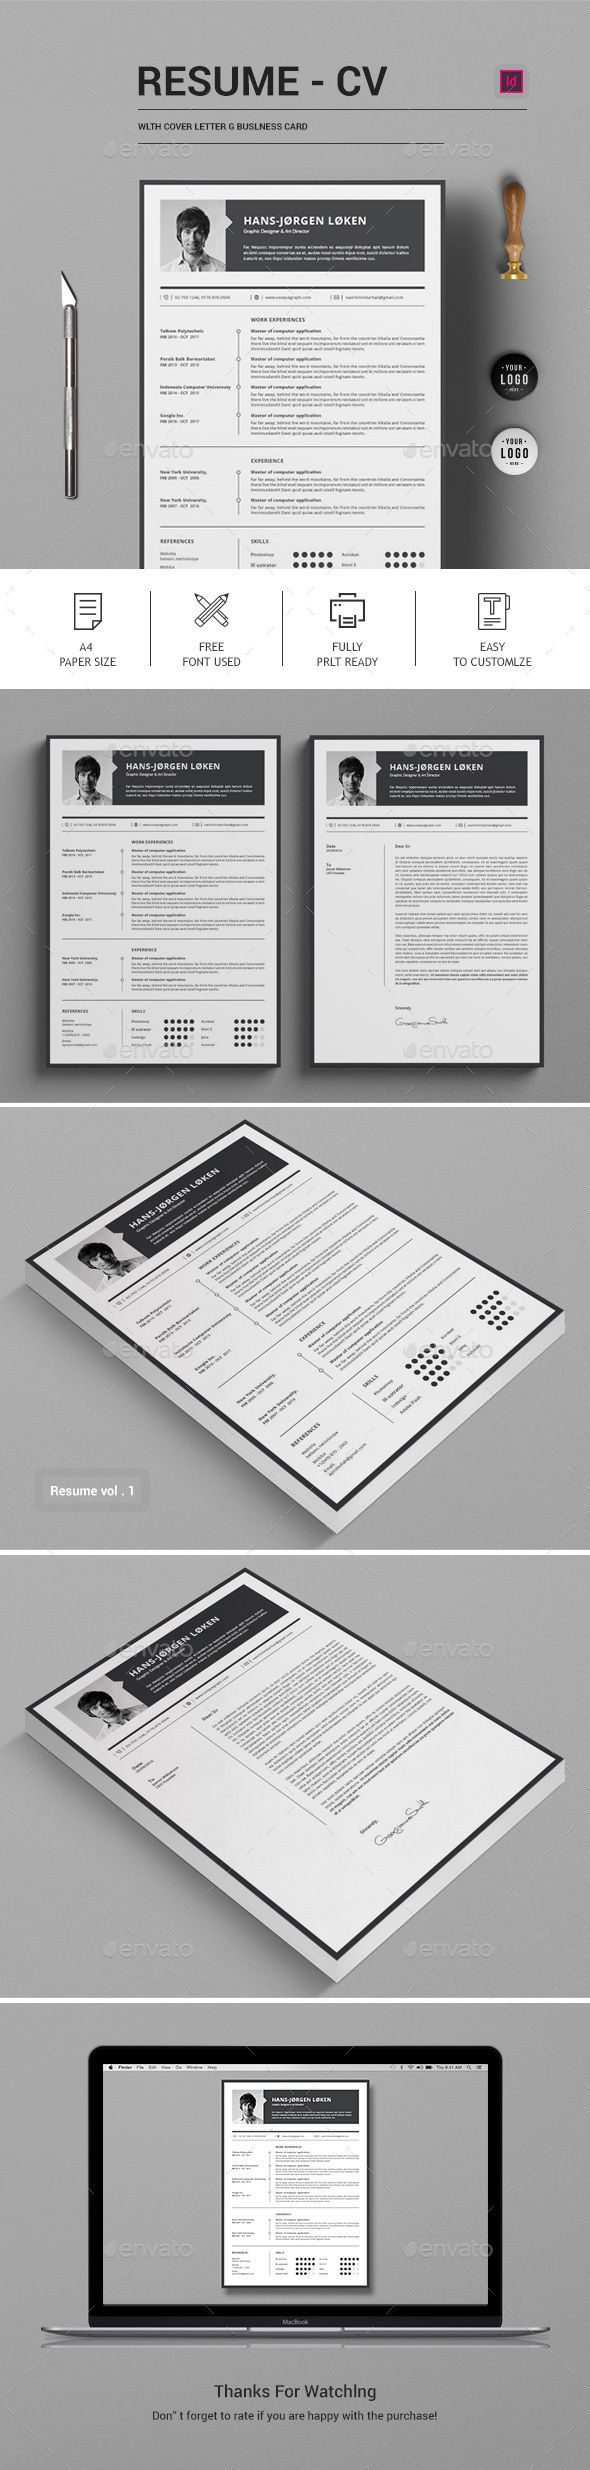 Buy CV by moverick on GraphicRiver This